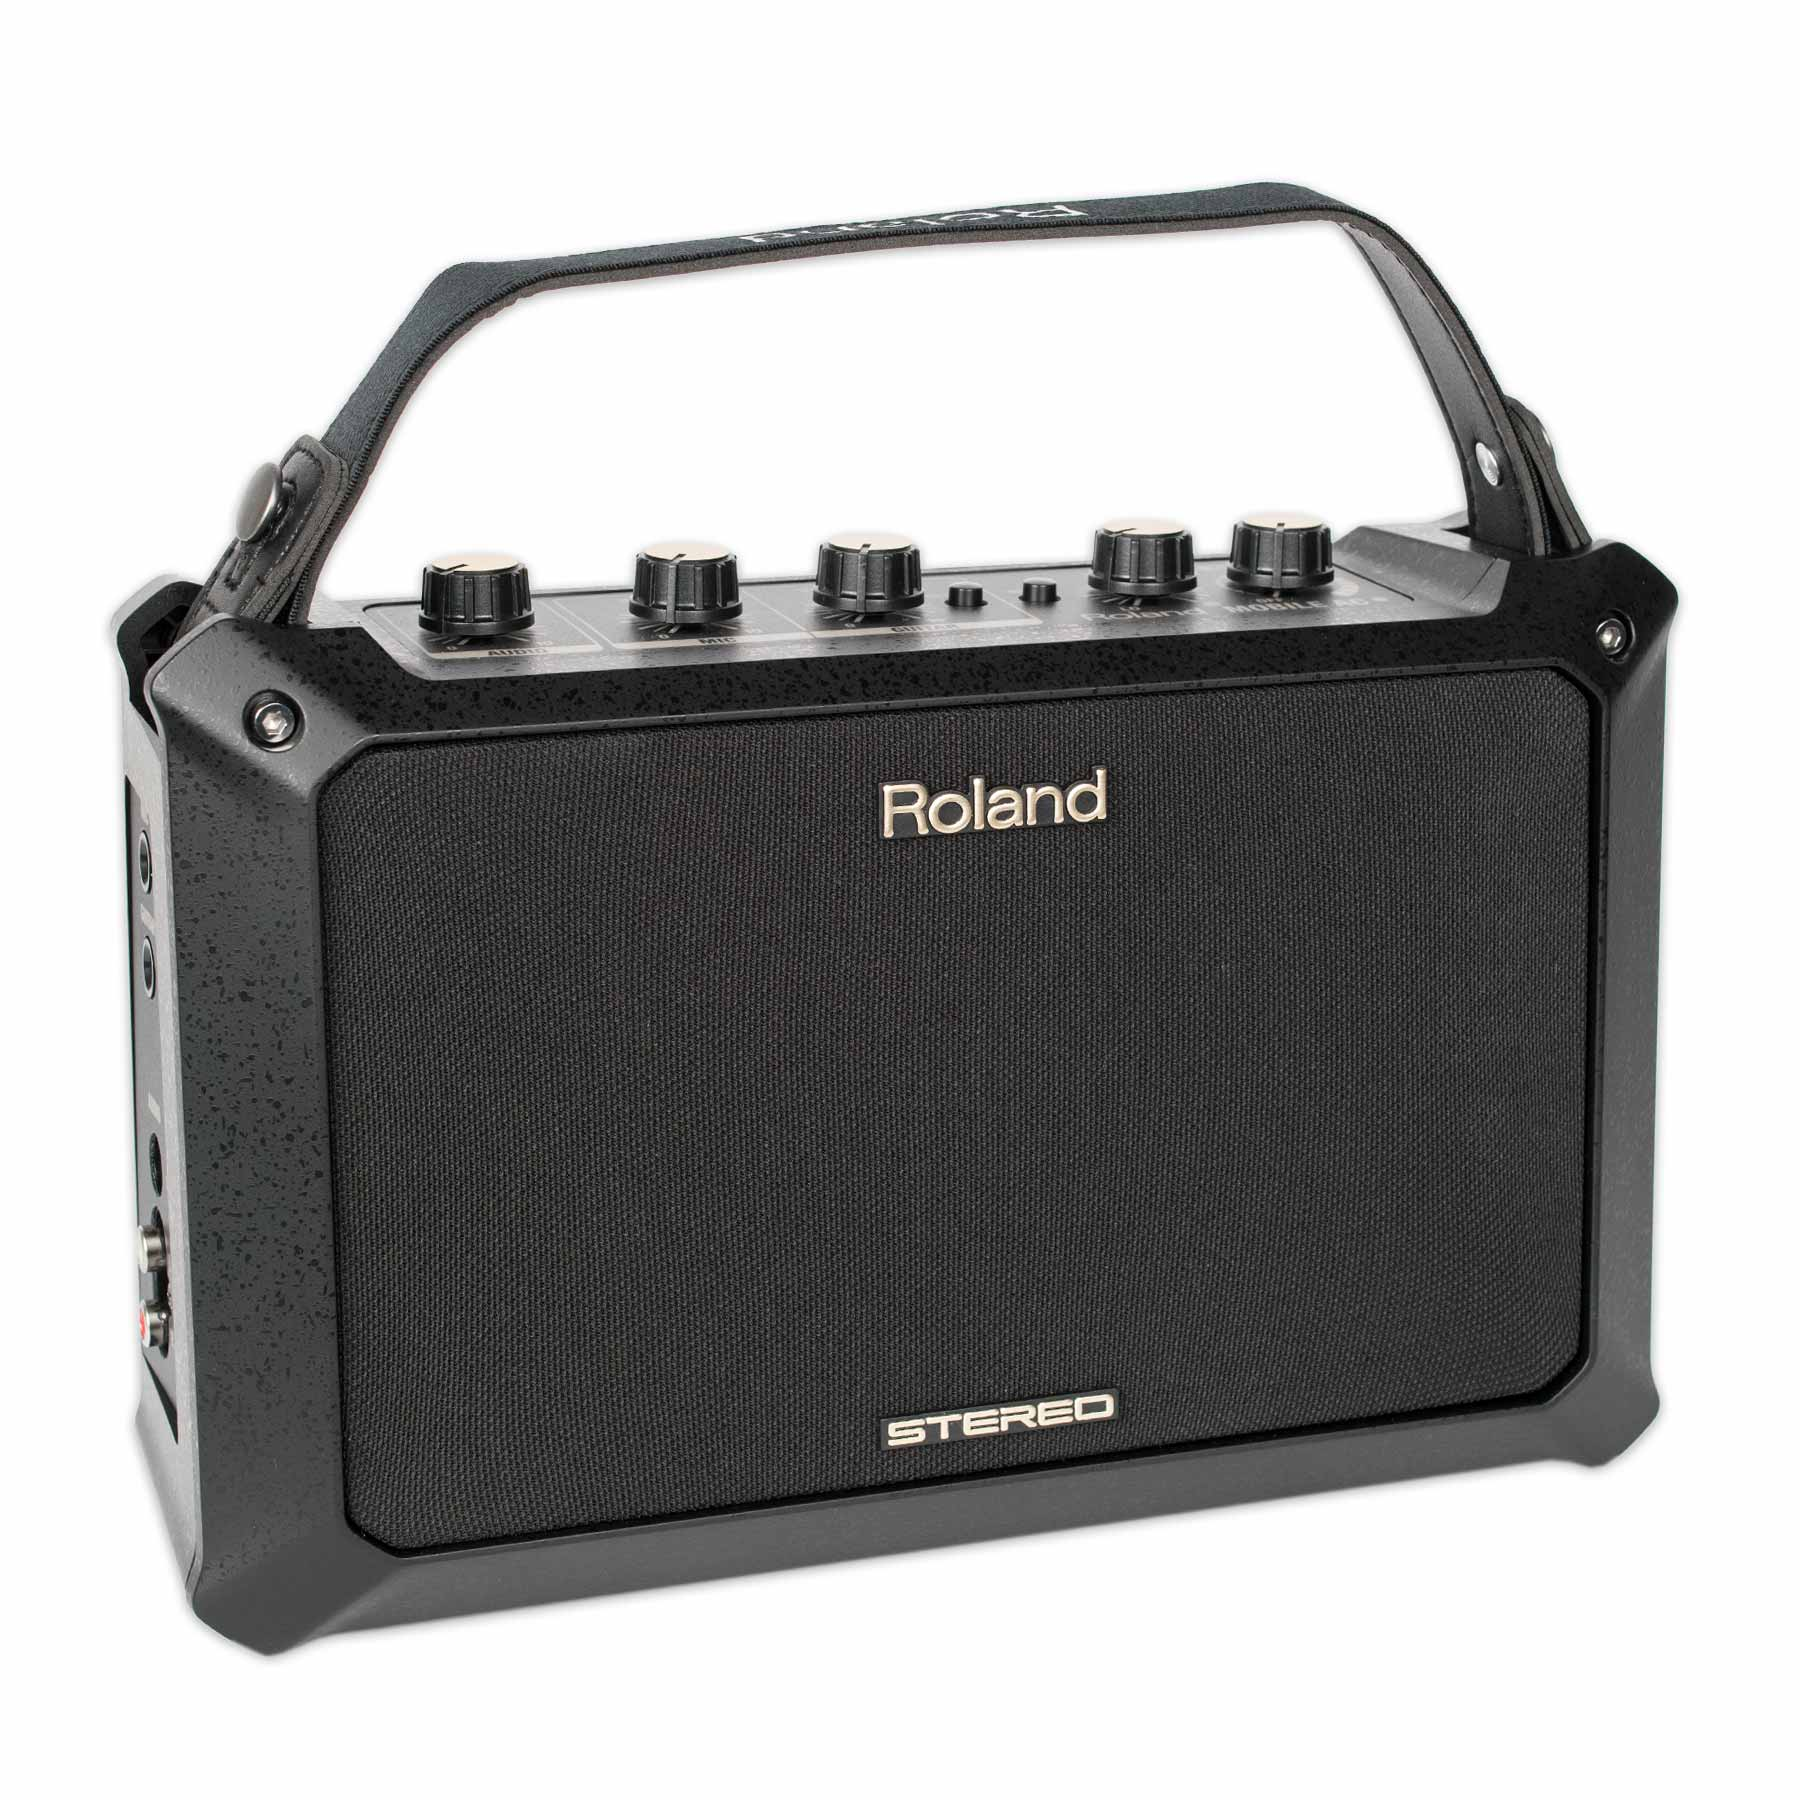 ROLAND BATTERY POWERED ACOUSTIC STEREO AMPLIFIER